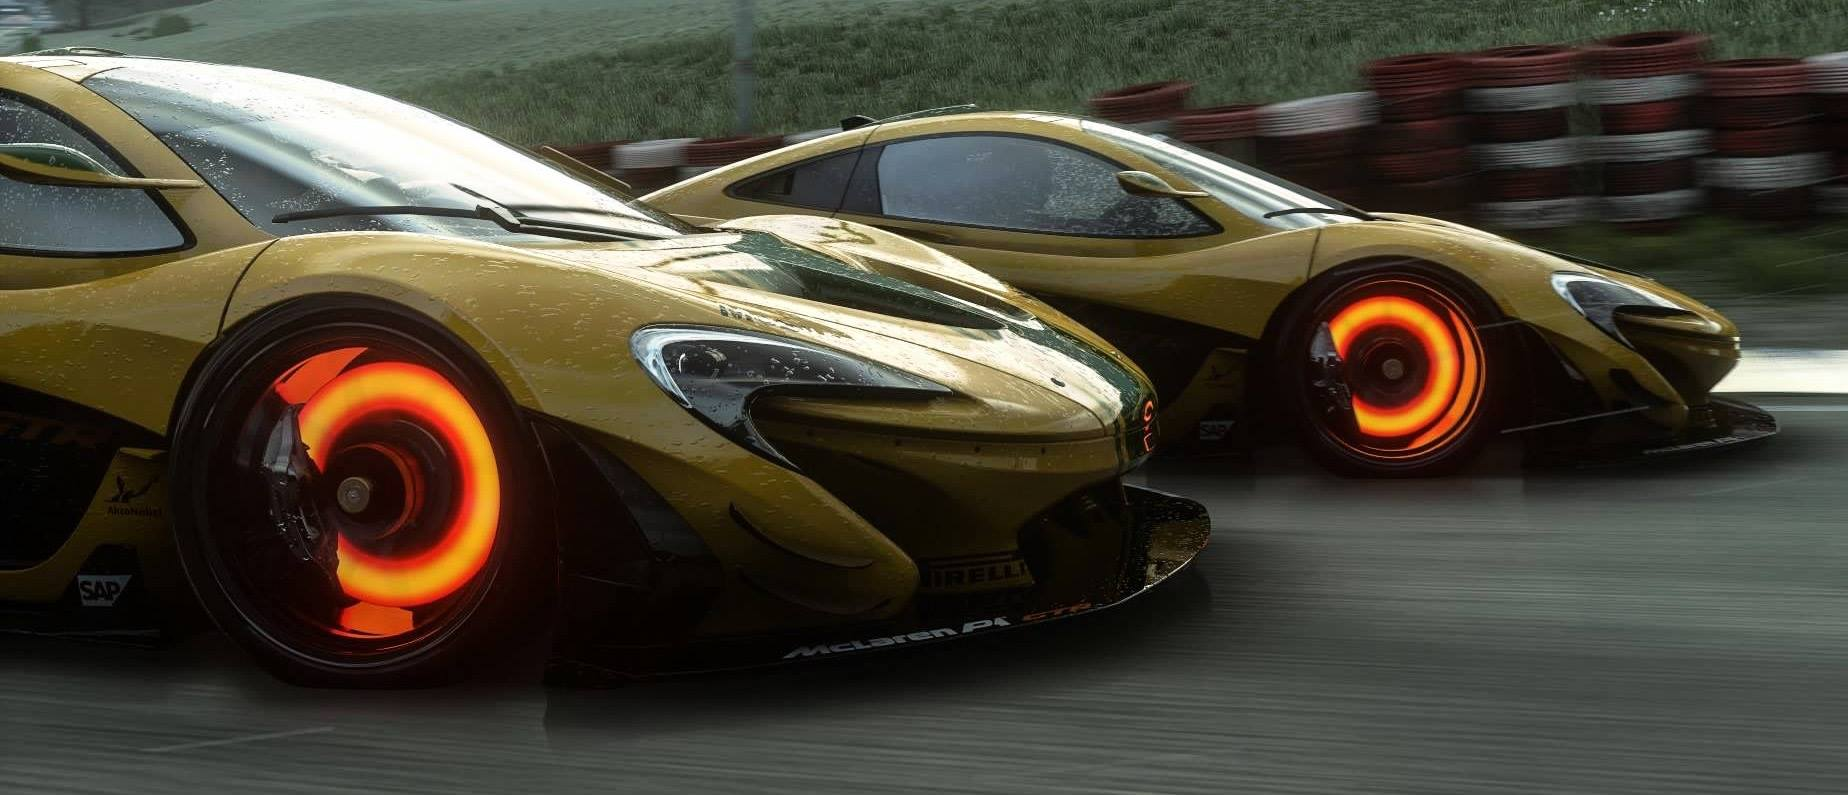 Stunning Mclaren P1 Gtr Pictures From Ps4 S Driveclub